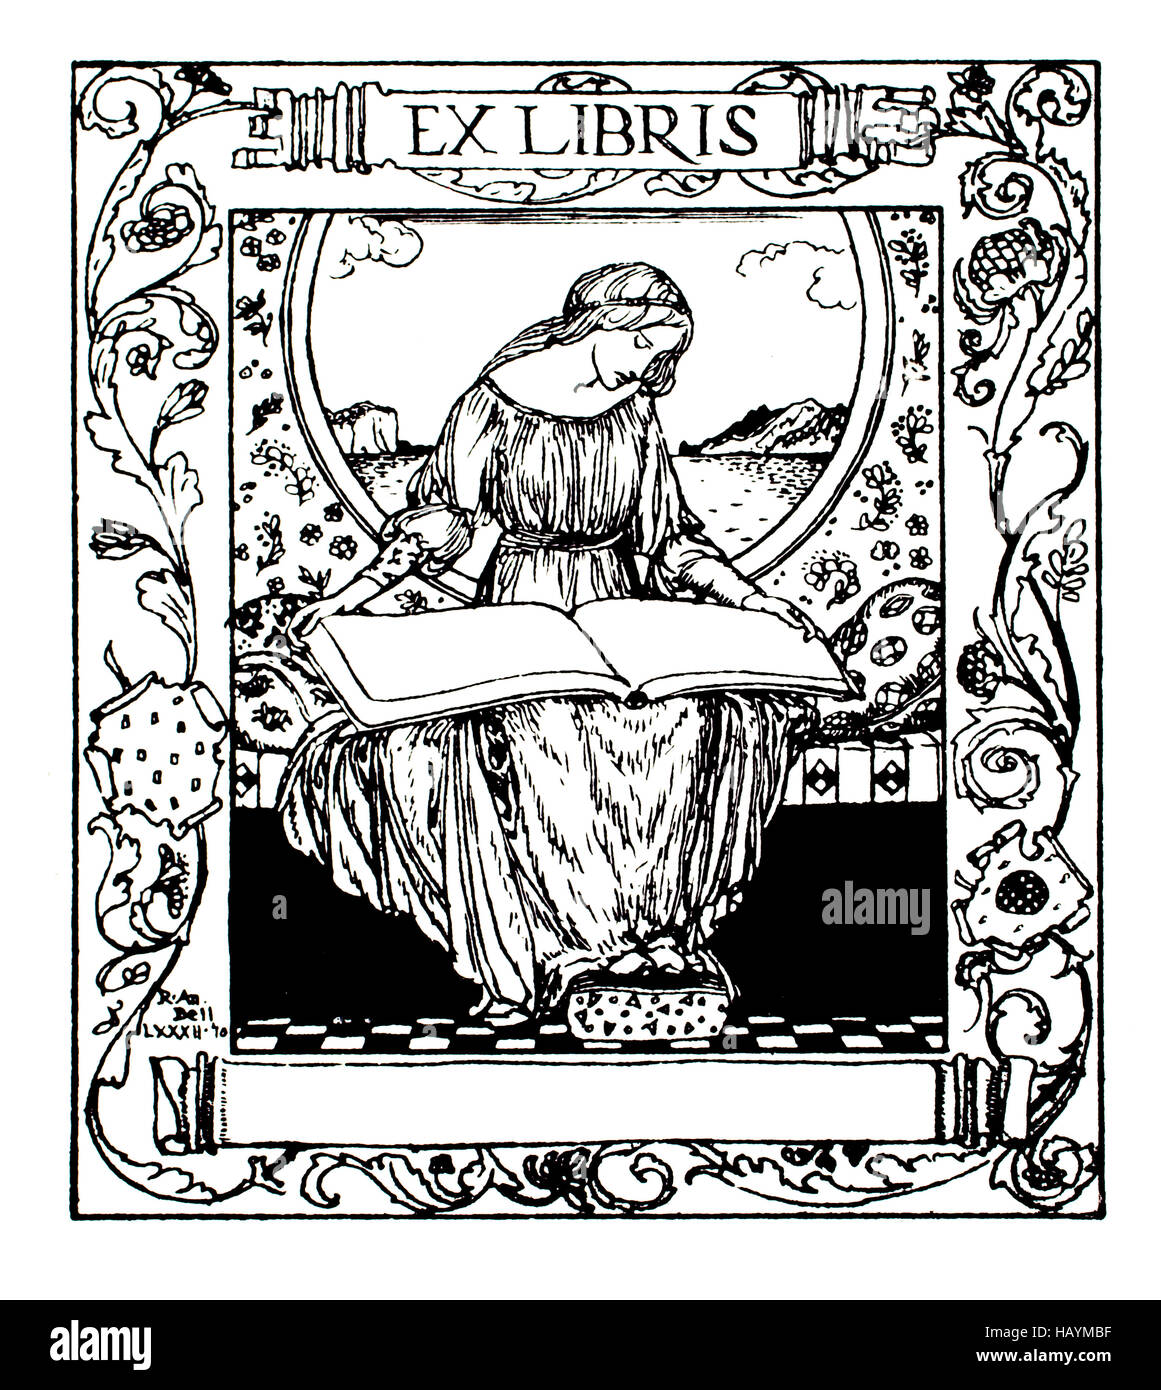 Ex Libris blank library bookplate by R Anning Bell, line illustration from 1911 Studio Magazine - Stock Image